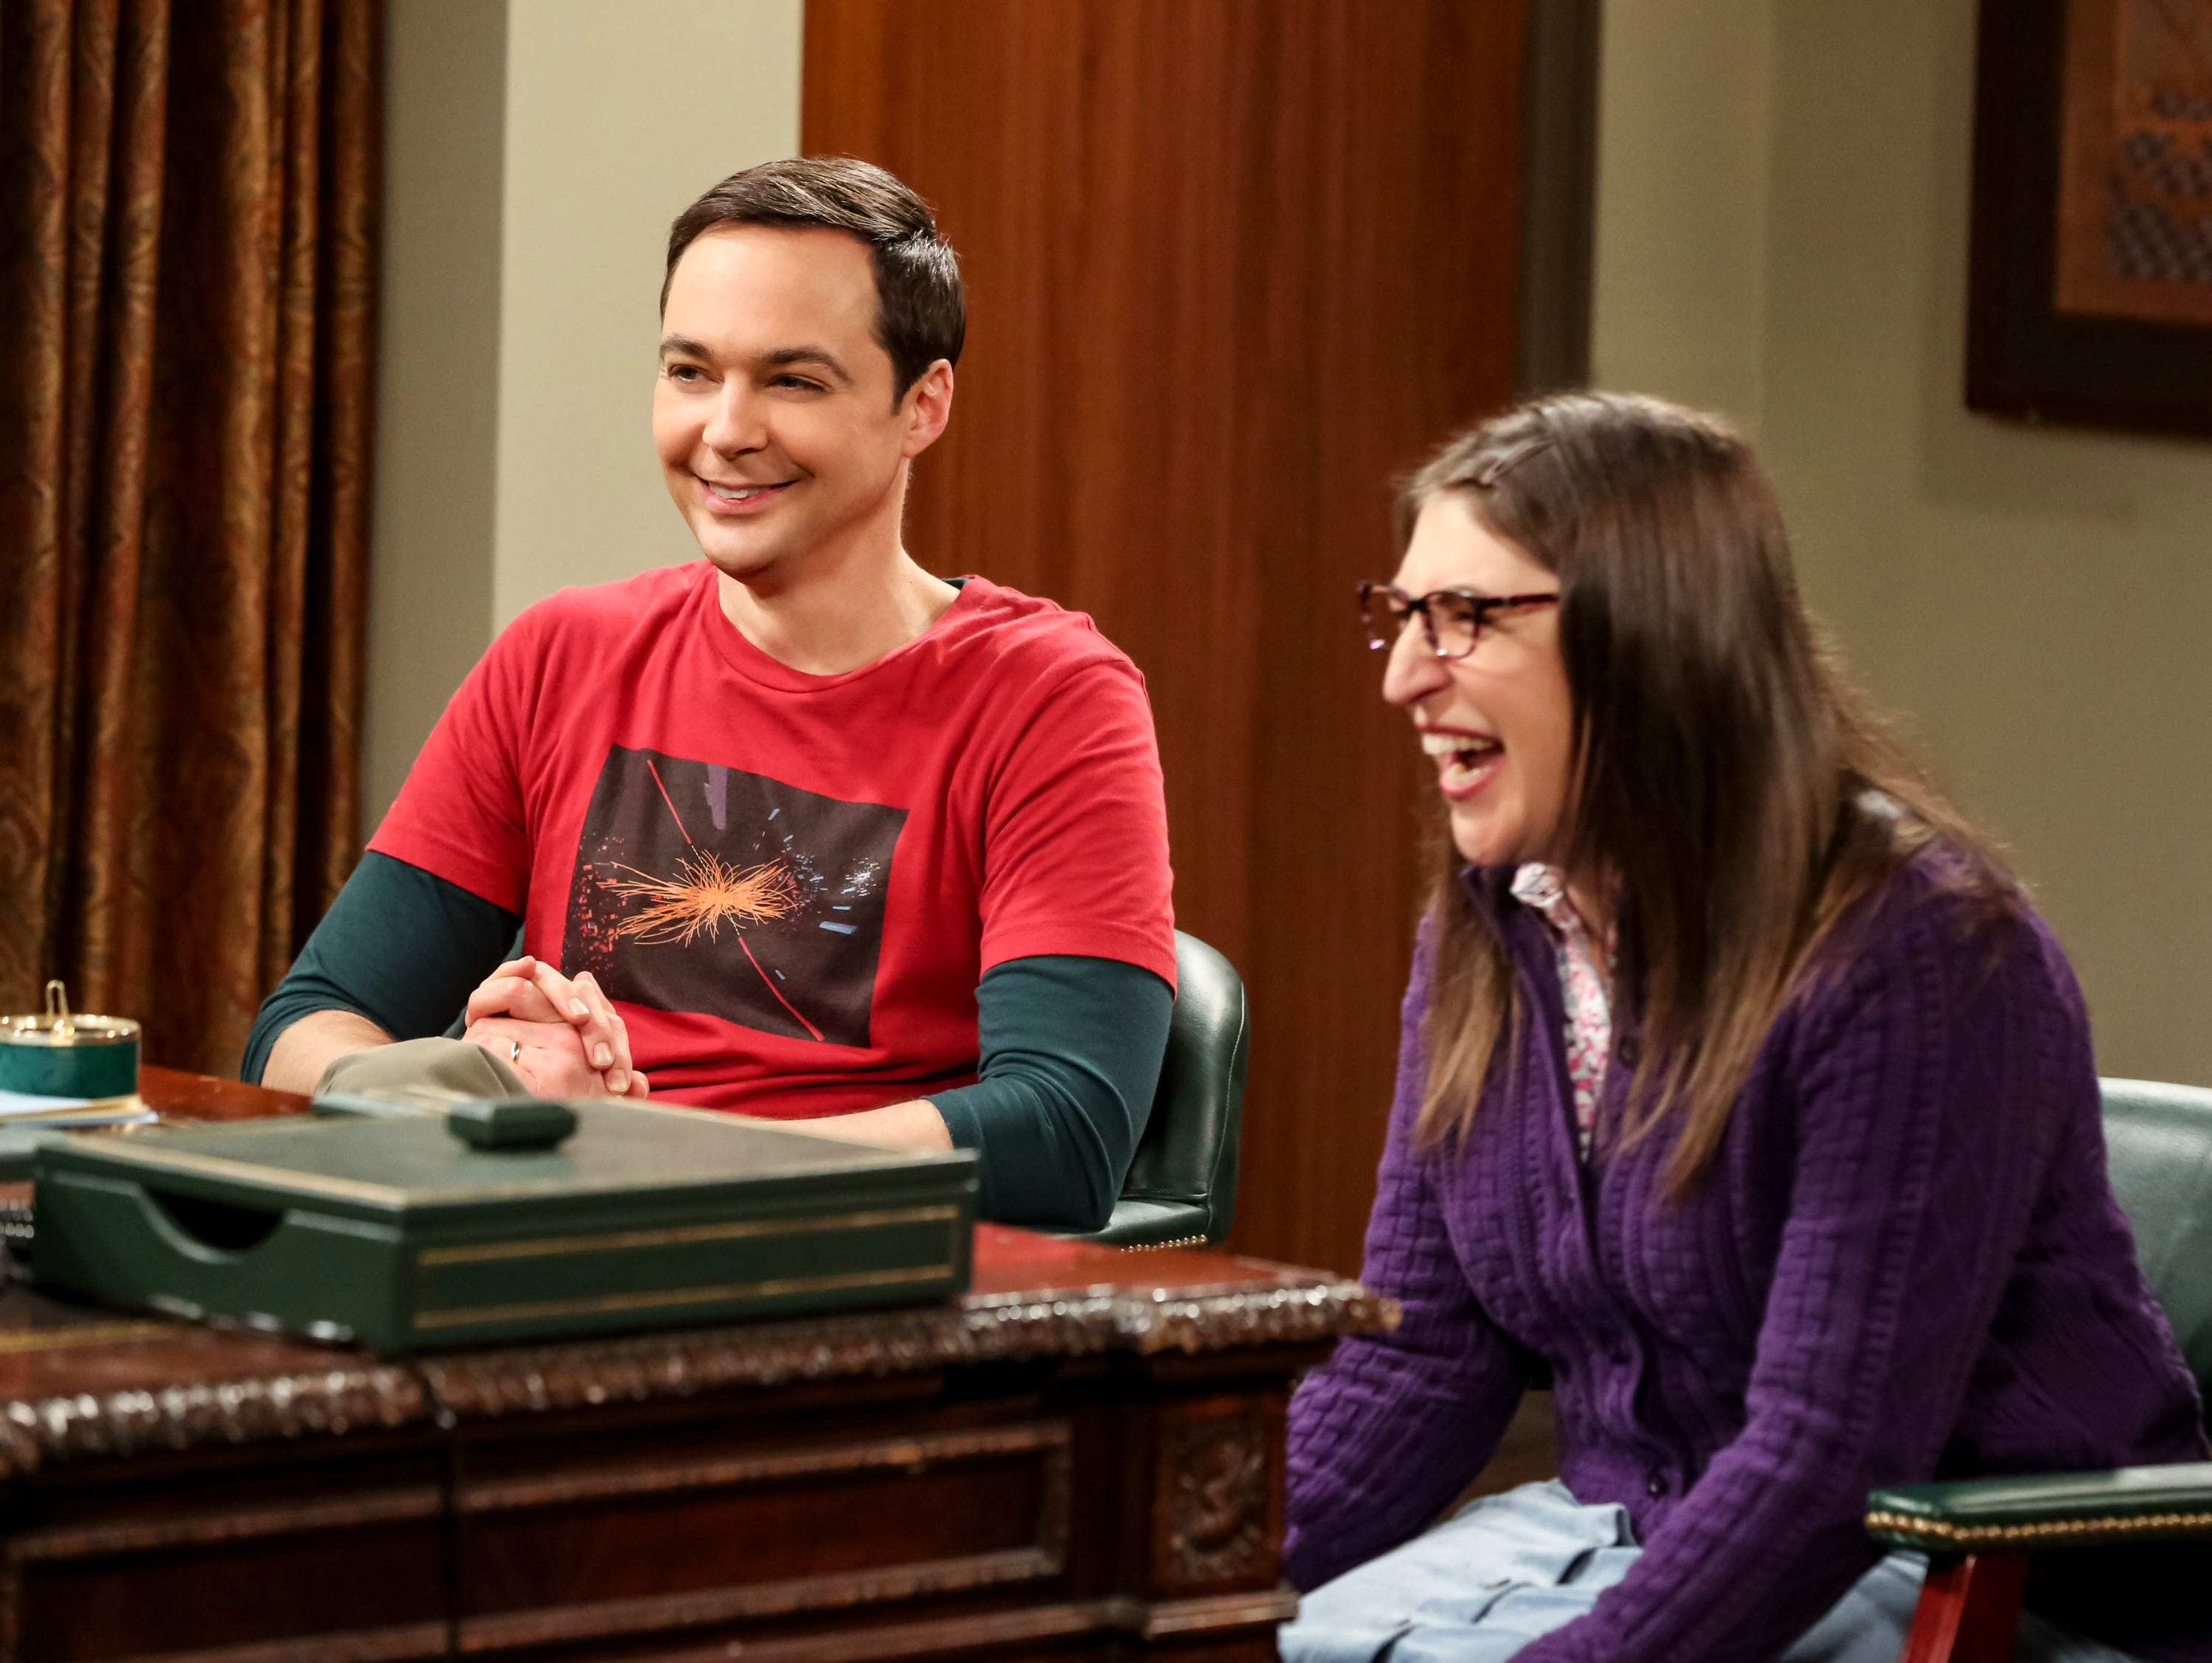 Spouses Sheldon Cooper (Jim Parsons), left, and Amy Farrah Fowler (Mayim Bialik) have been working on a physics theory that could lead to a Nobel Prize during the 12th and final season of CBS's 'The Big Bang Theory.'